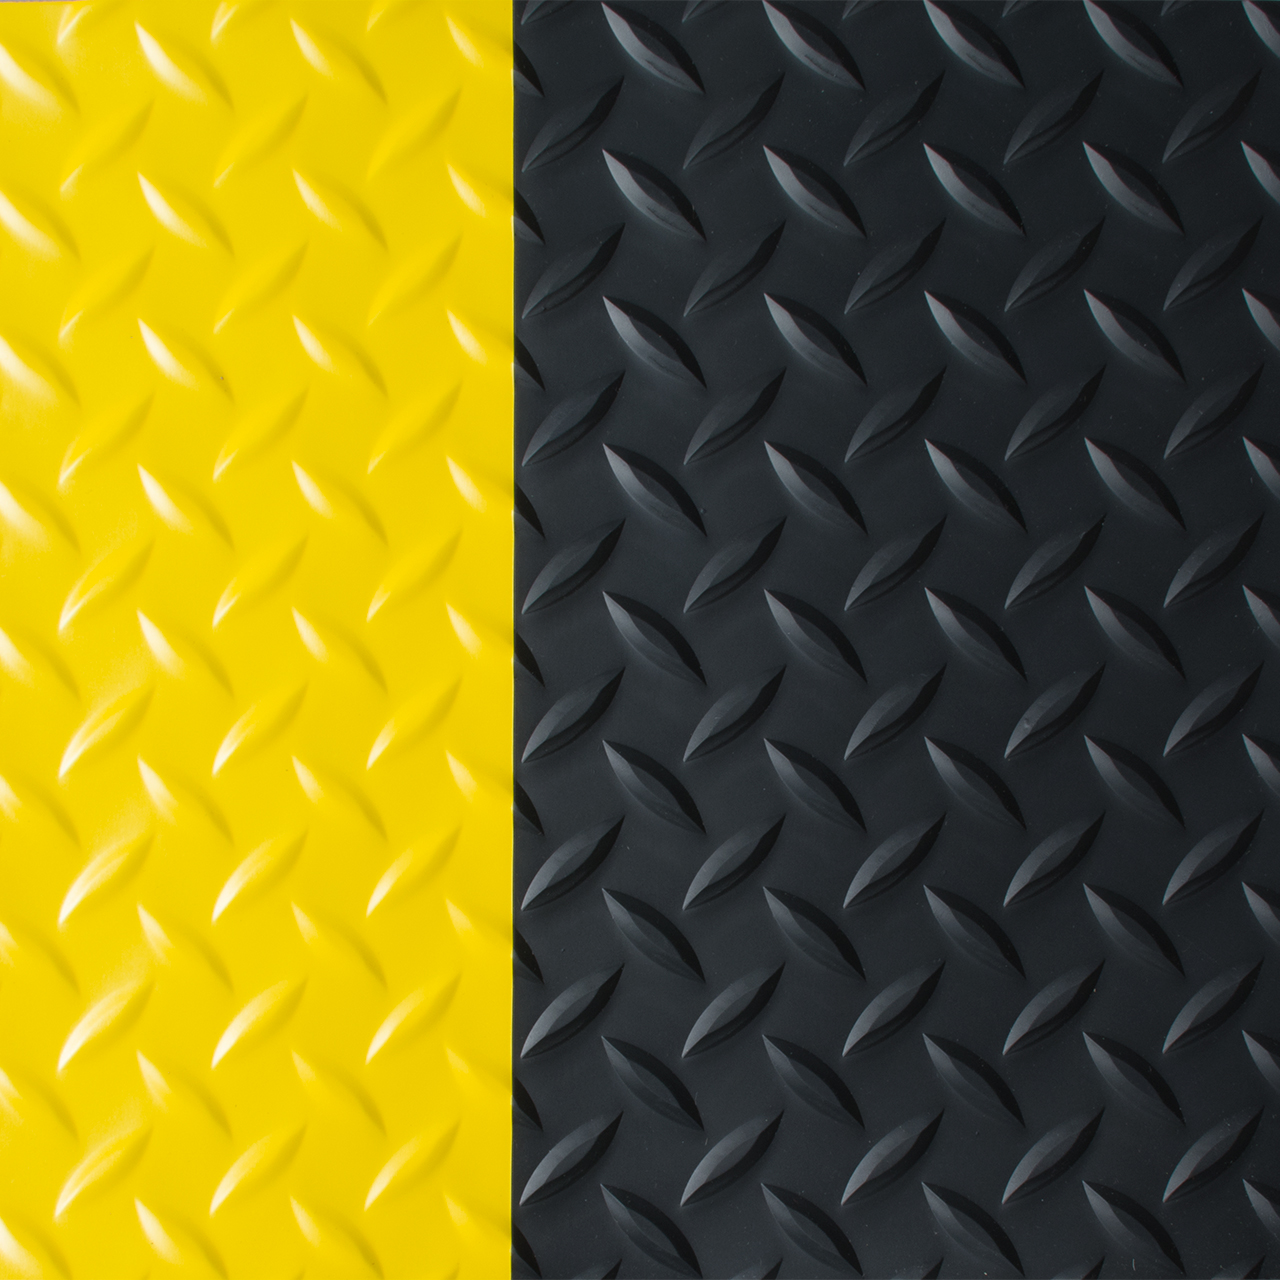 Deckplate Matting Yellow Black